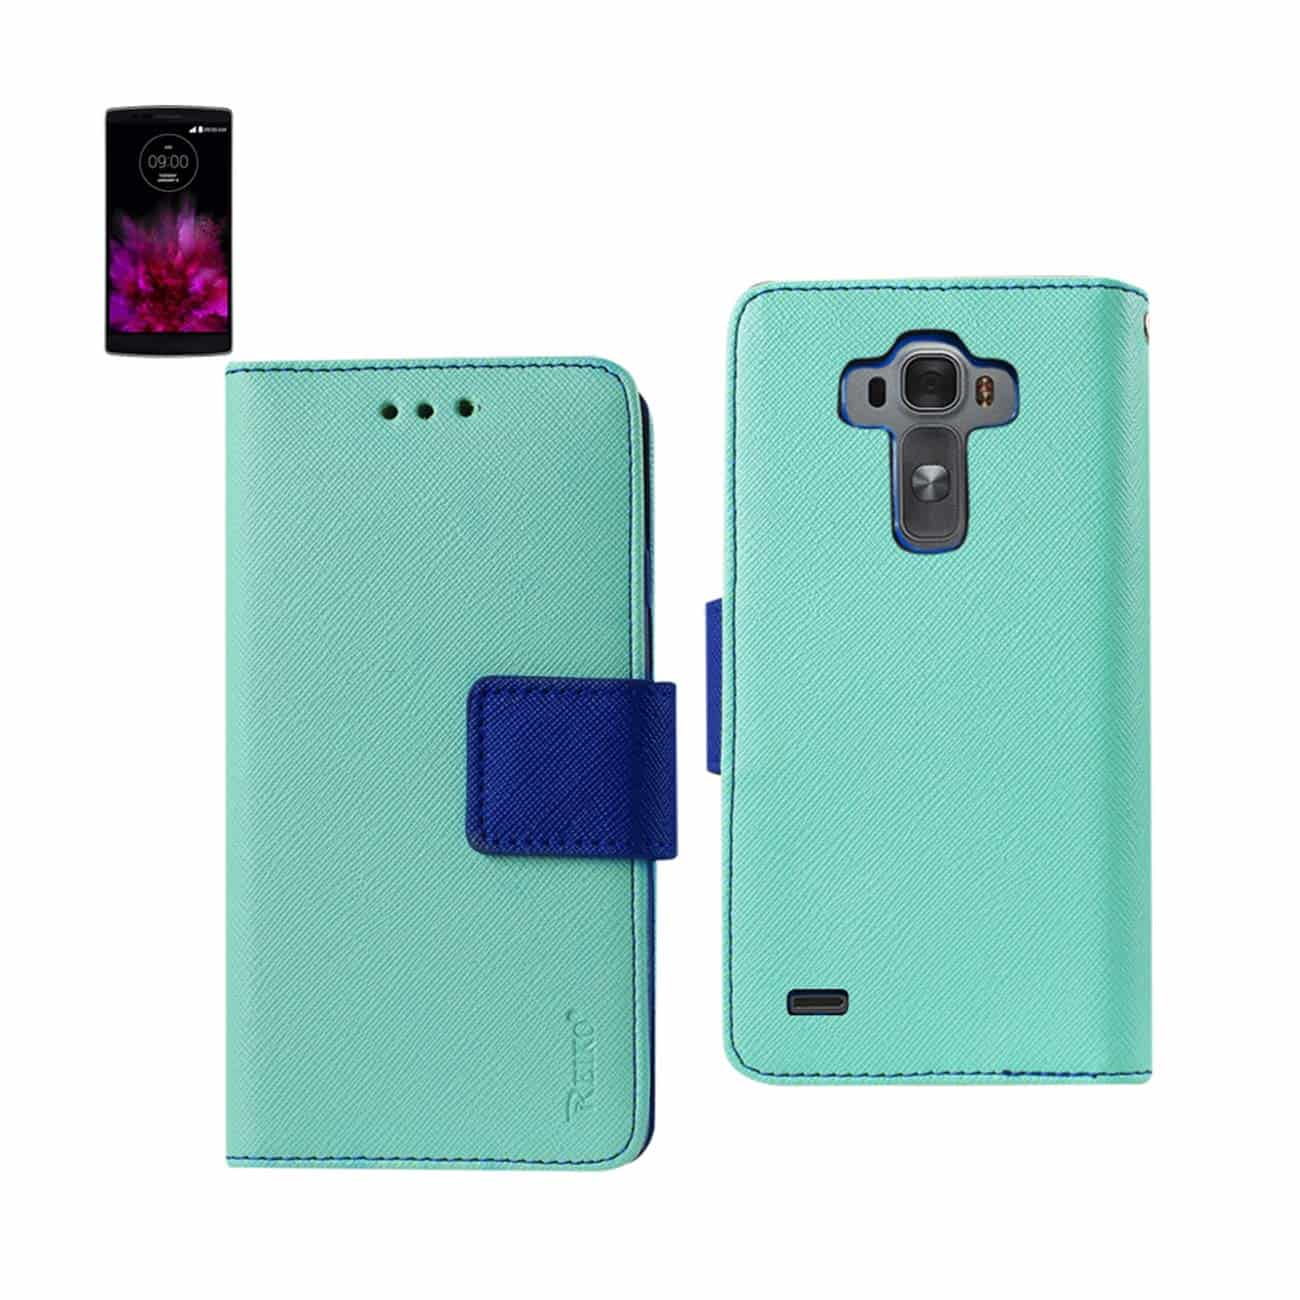 LG G FLEX 2 3-IN-1 WALLET CASE IN GREEN